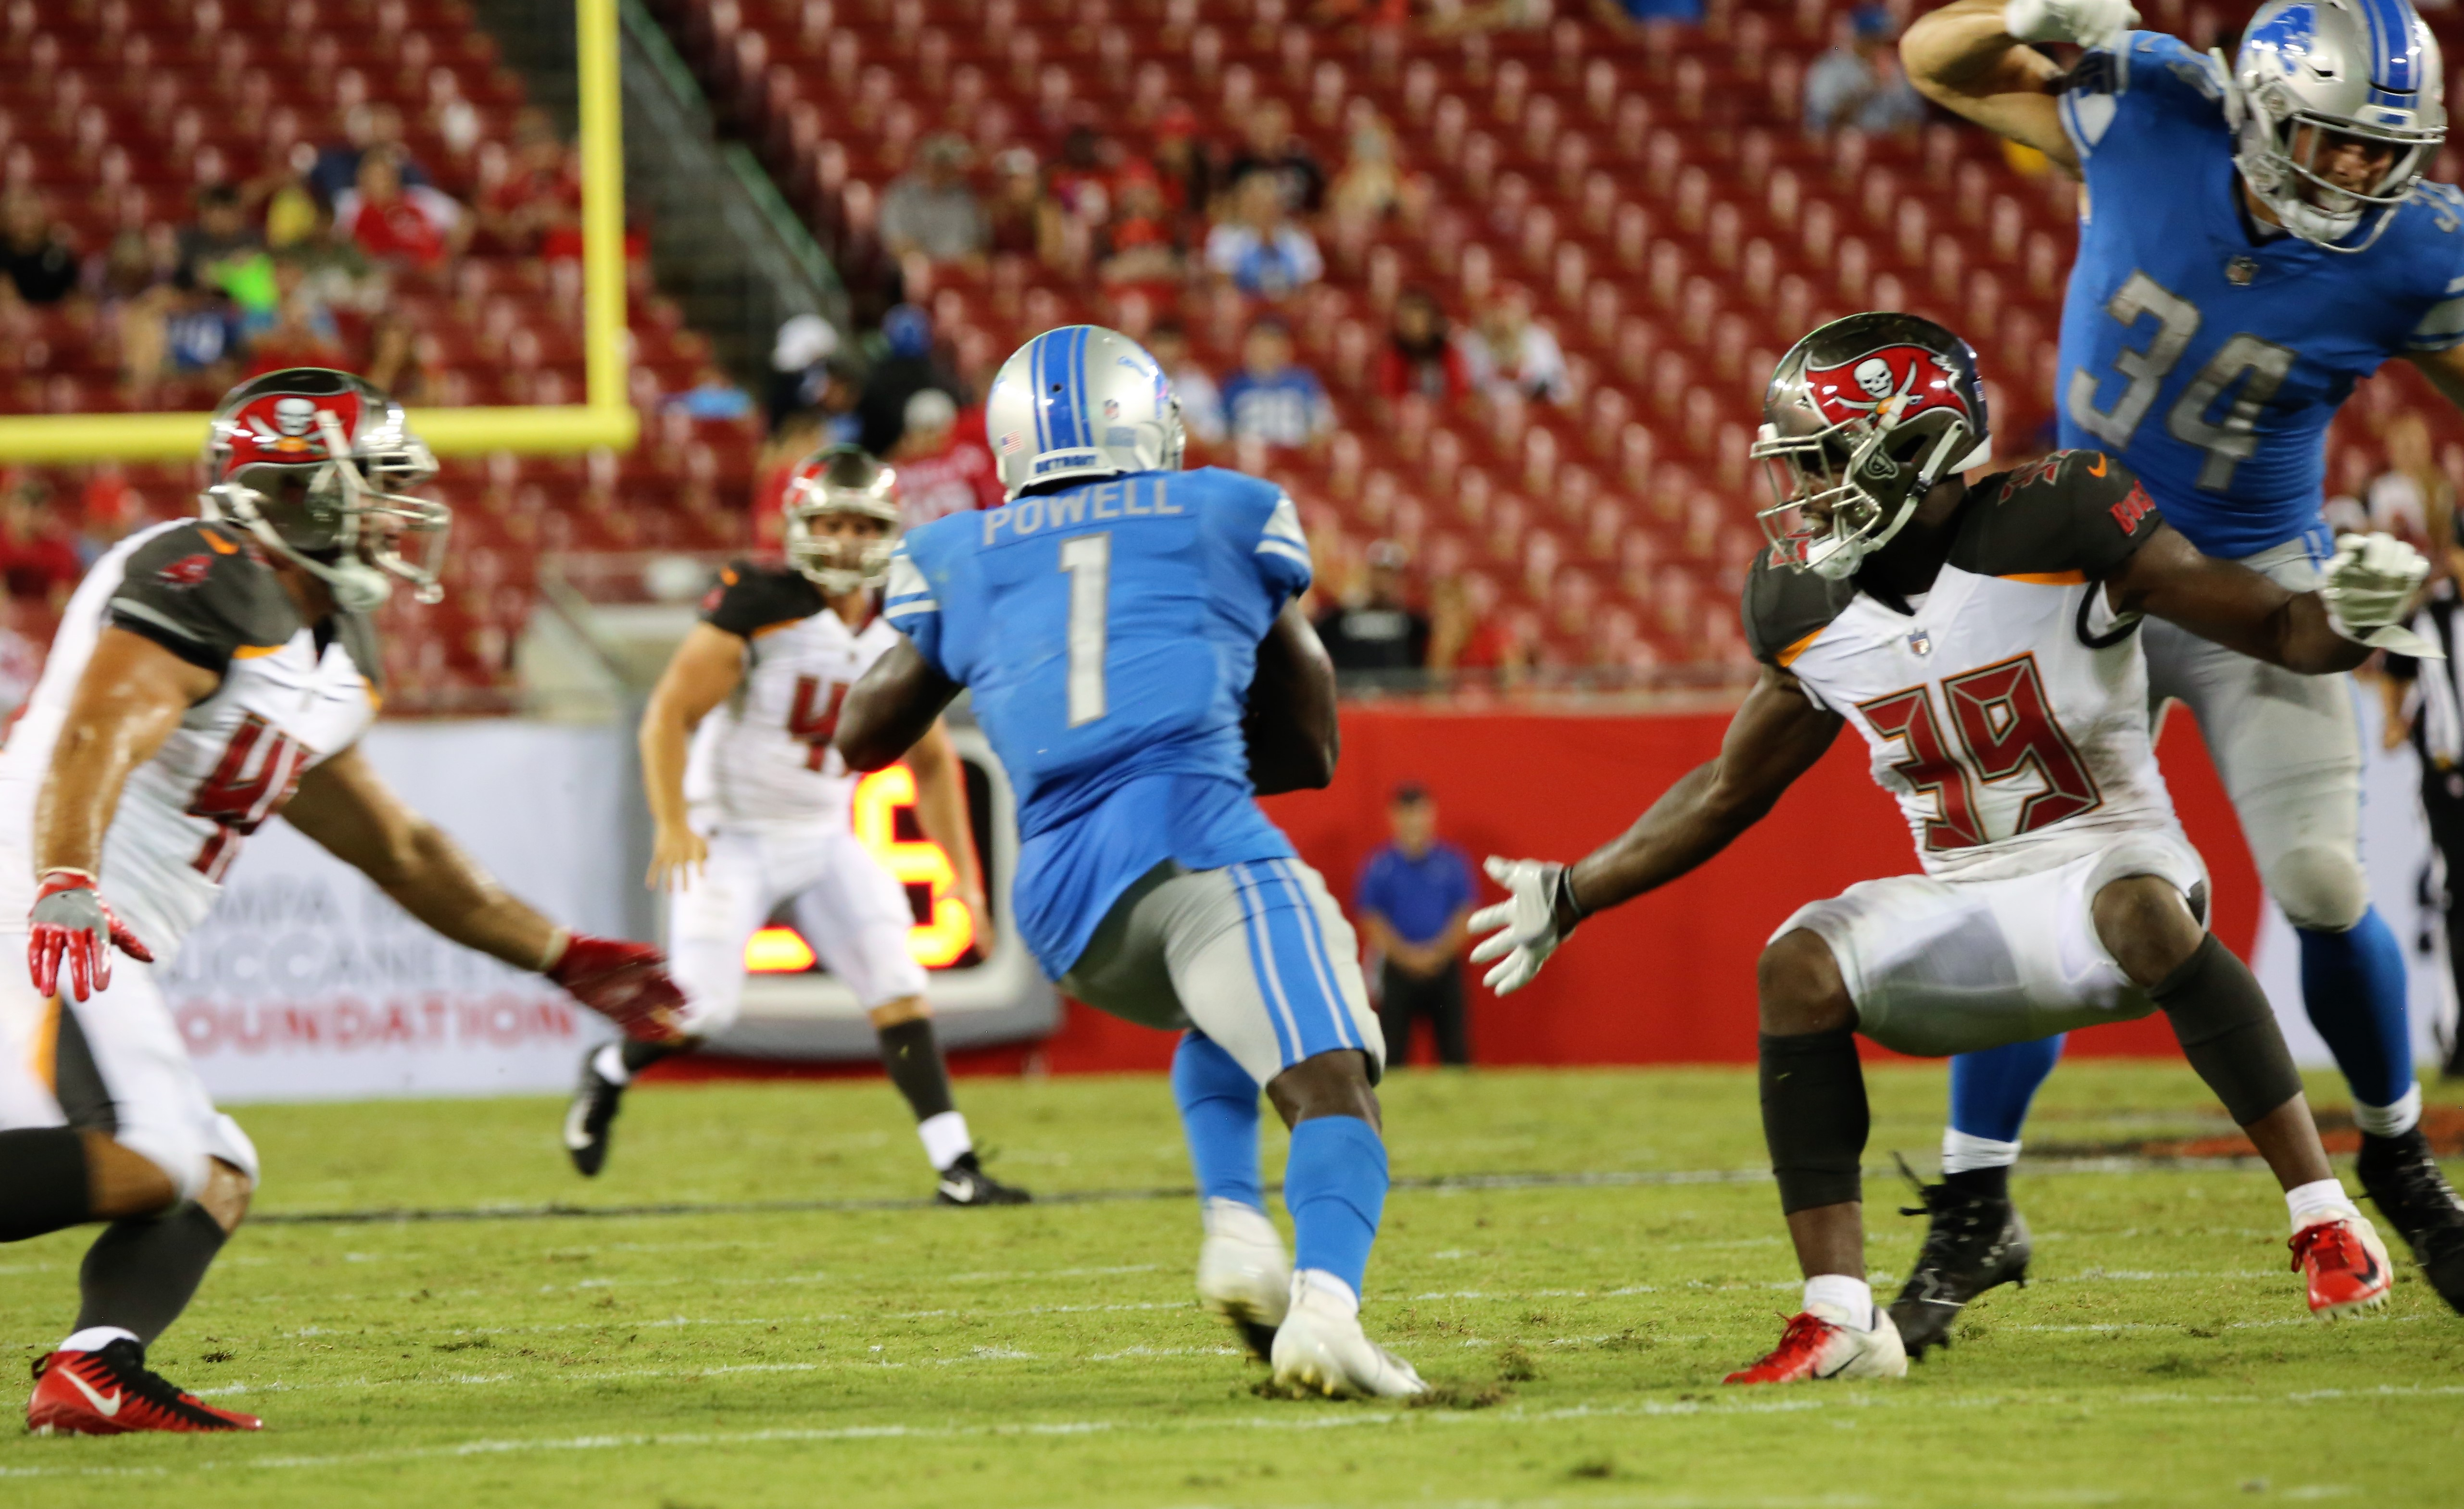 Detroit Lions running back Ameer Abdullah (21) is tackled during the second half of the NFL week 3 preseason game against the Tampa Bay Buccaneers at Raymond James Stadium in Tampa, Florida, Friday, August 24, 2018. (Florida National News photo / Willie David)